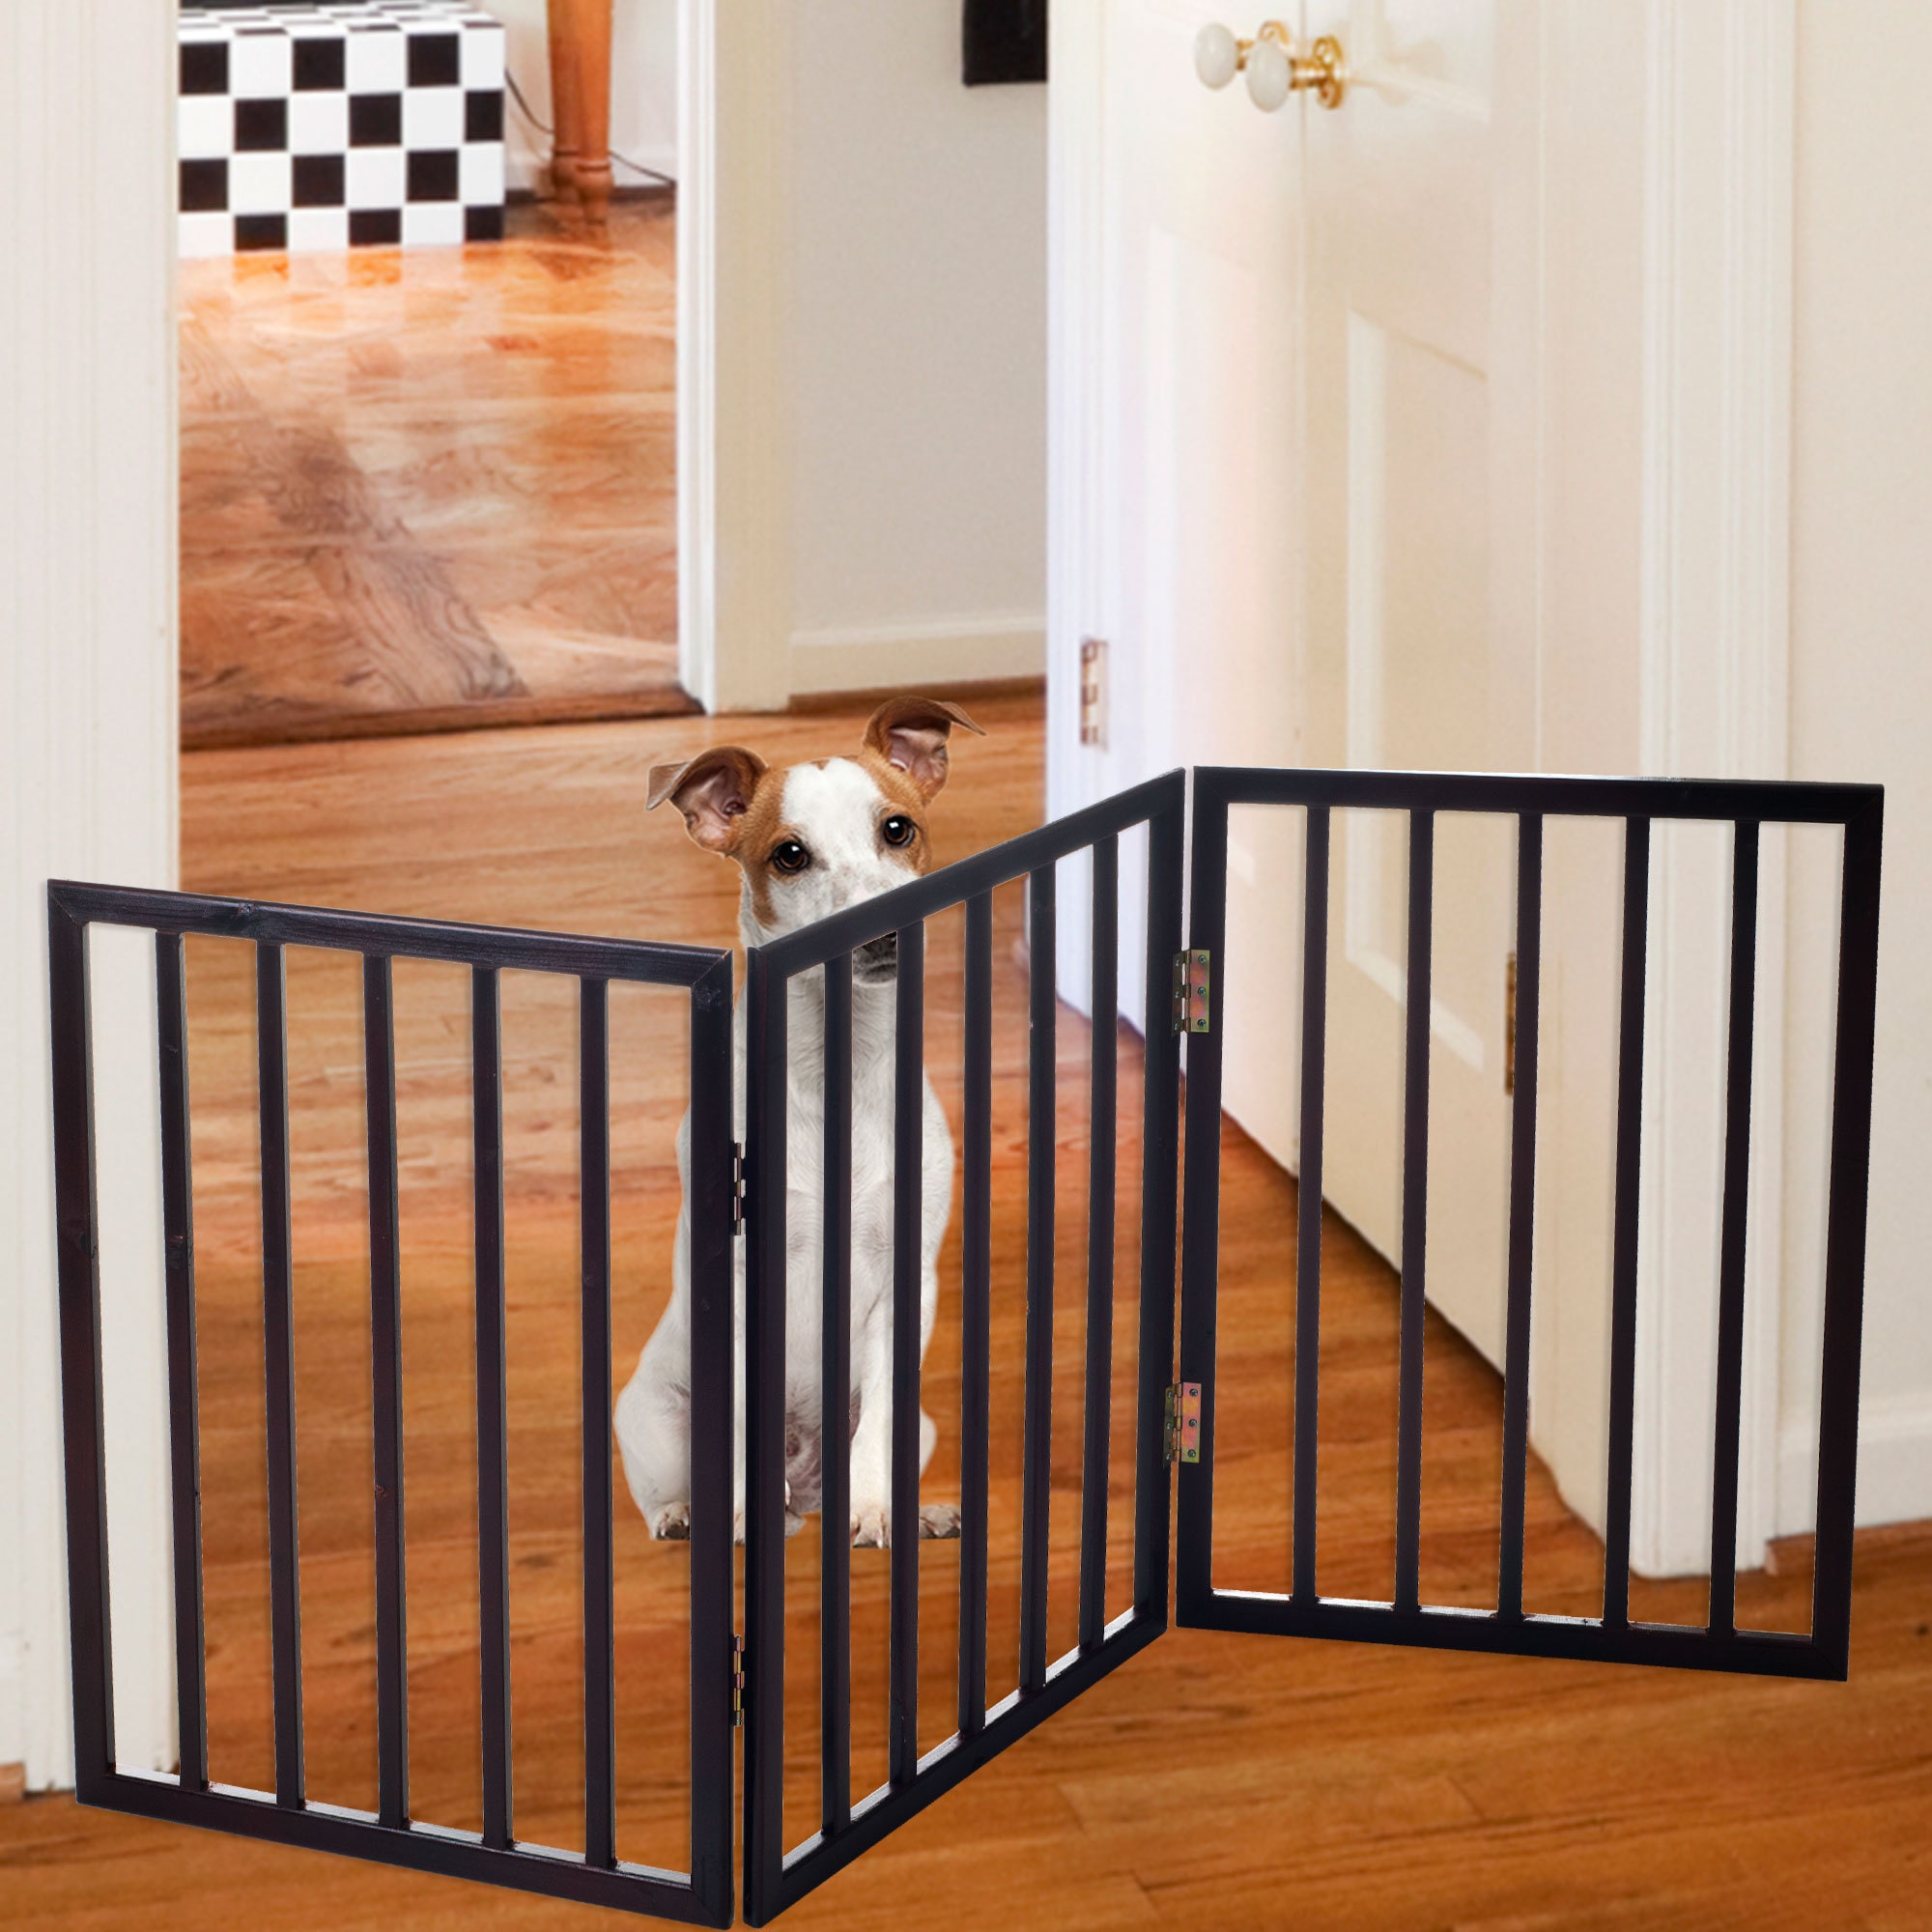 Easy-Up Free Standing Folding Gate by PAW (Folding Gate),...